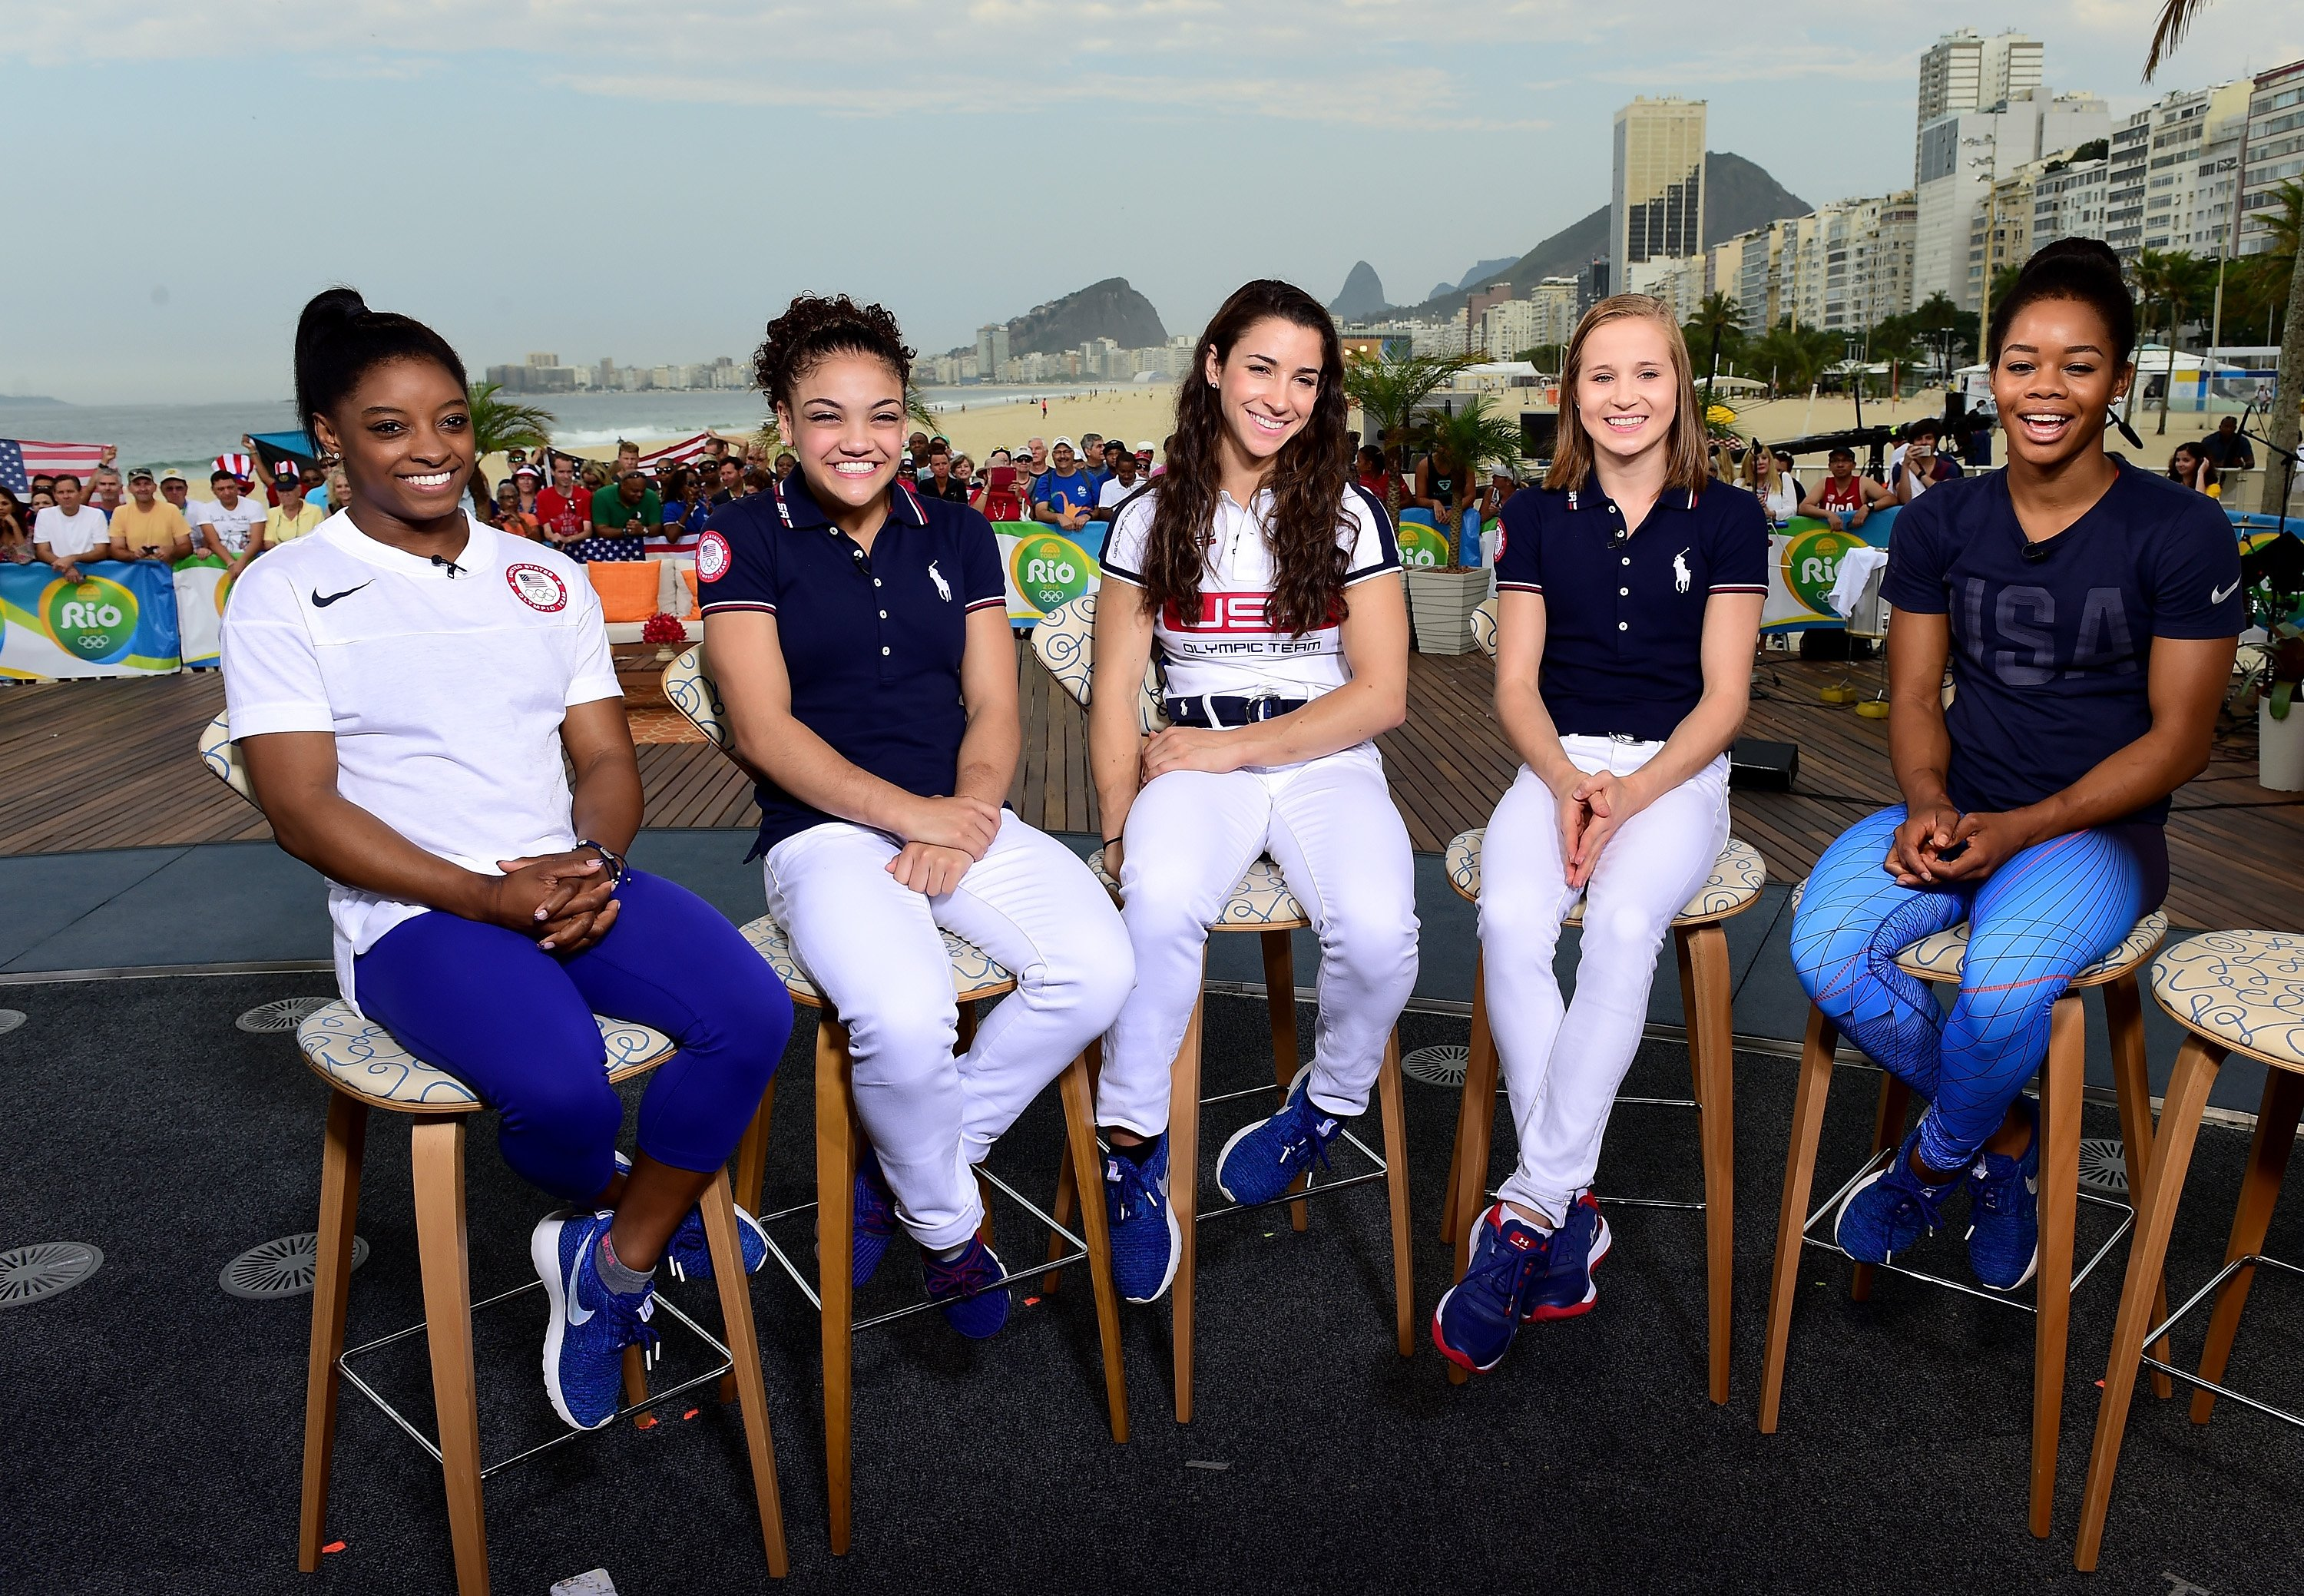 Members of the 'Final Five': Simone Biles, Laurie Hernandez, Aly Raisman, Madison Kocian and Gabby Douglas of the United States smile on the 'Today Show' set on Copacabana Beach on August 18, 2016 in Rio de Janeiro